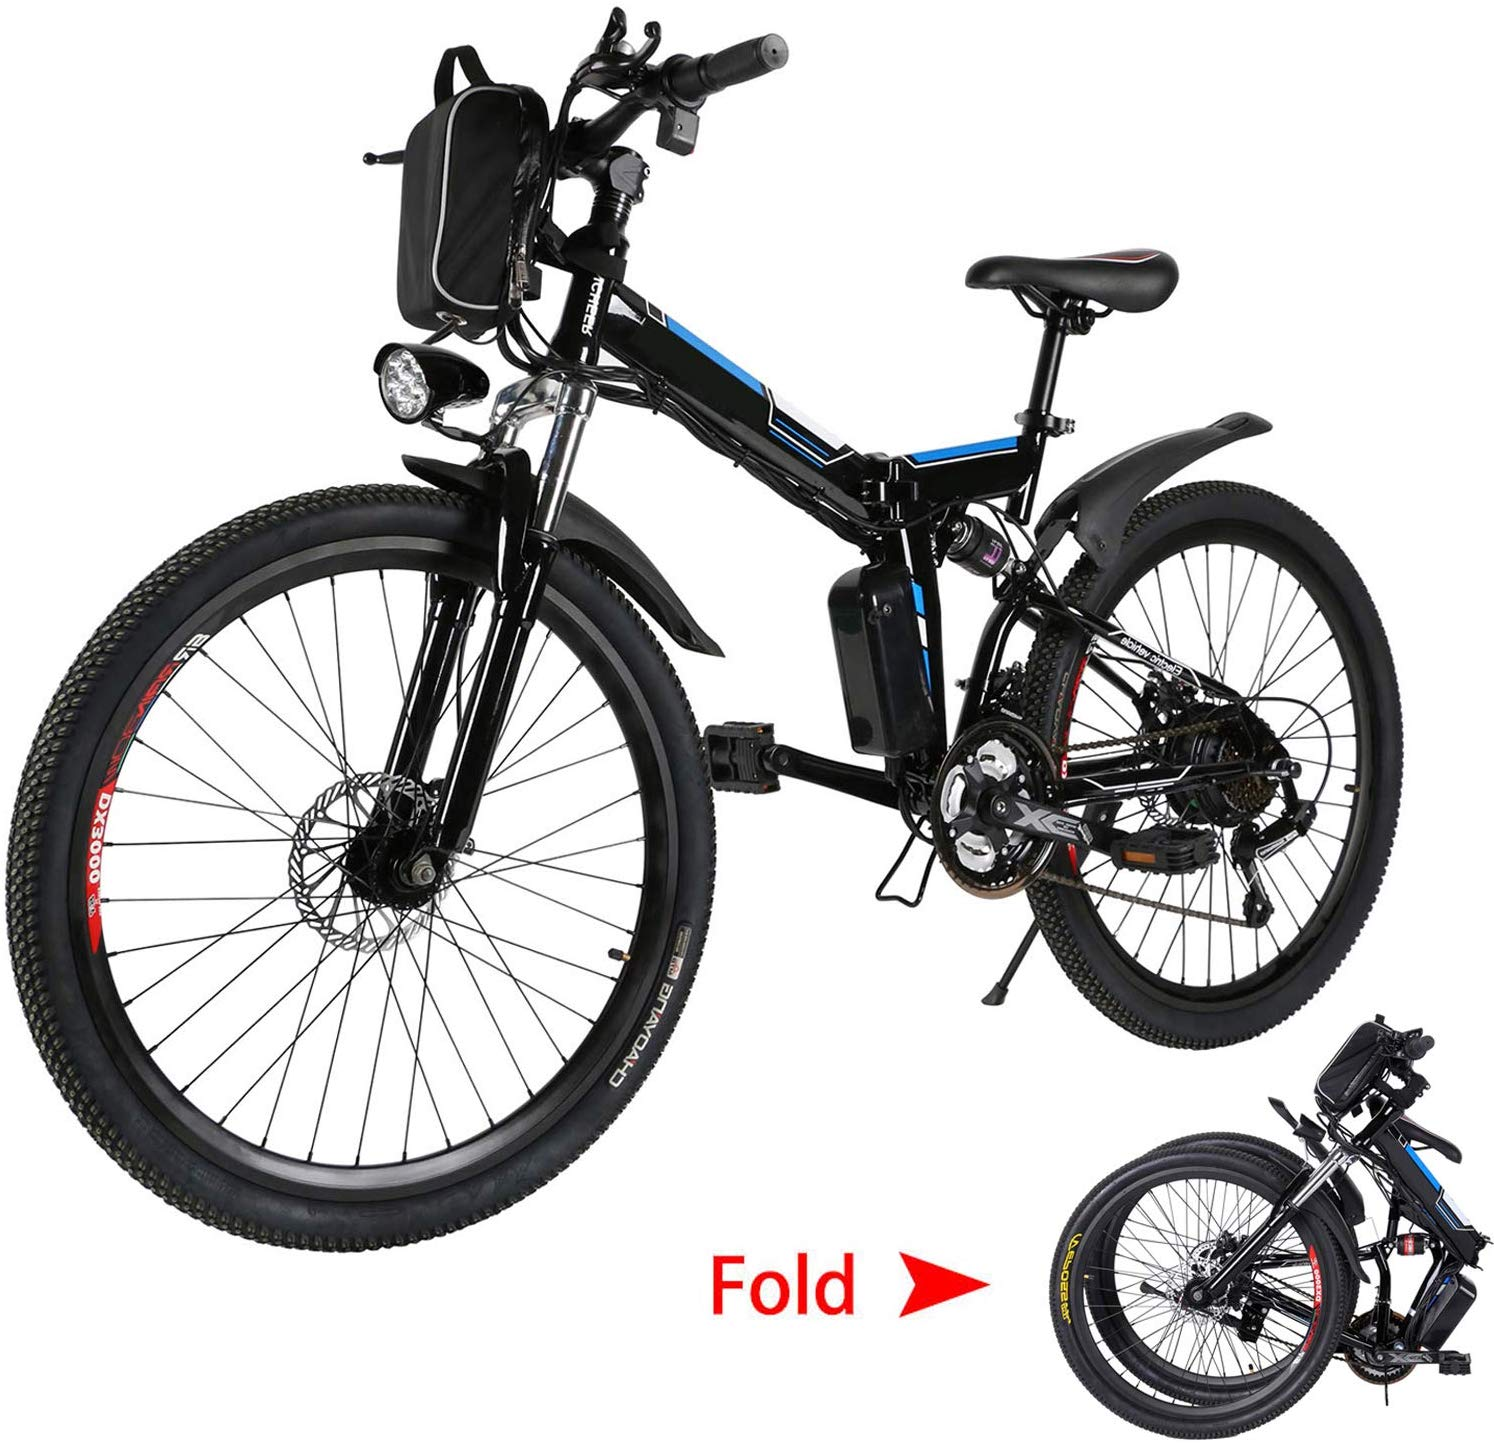 Emdaot 26 Inch Electric Mountain Bike